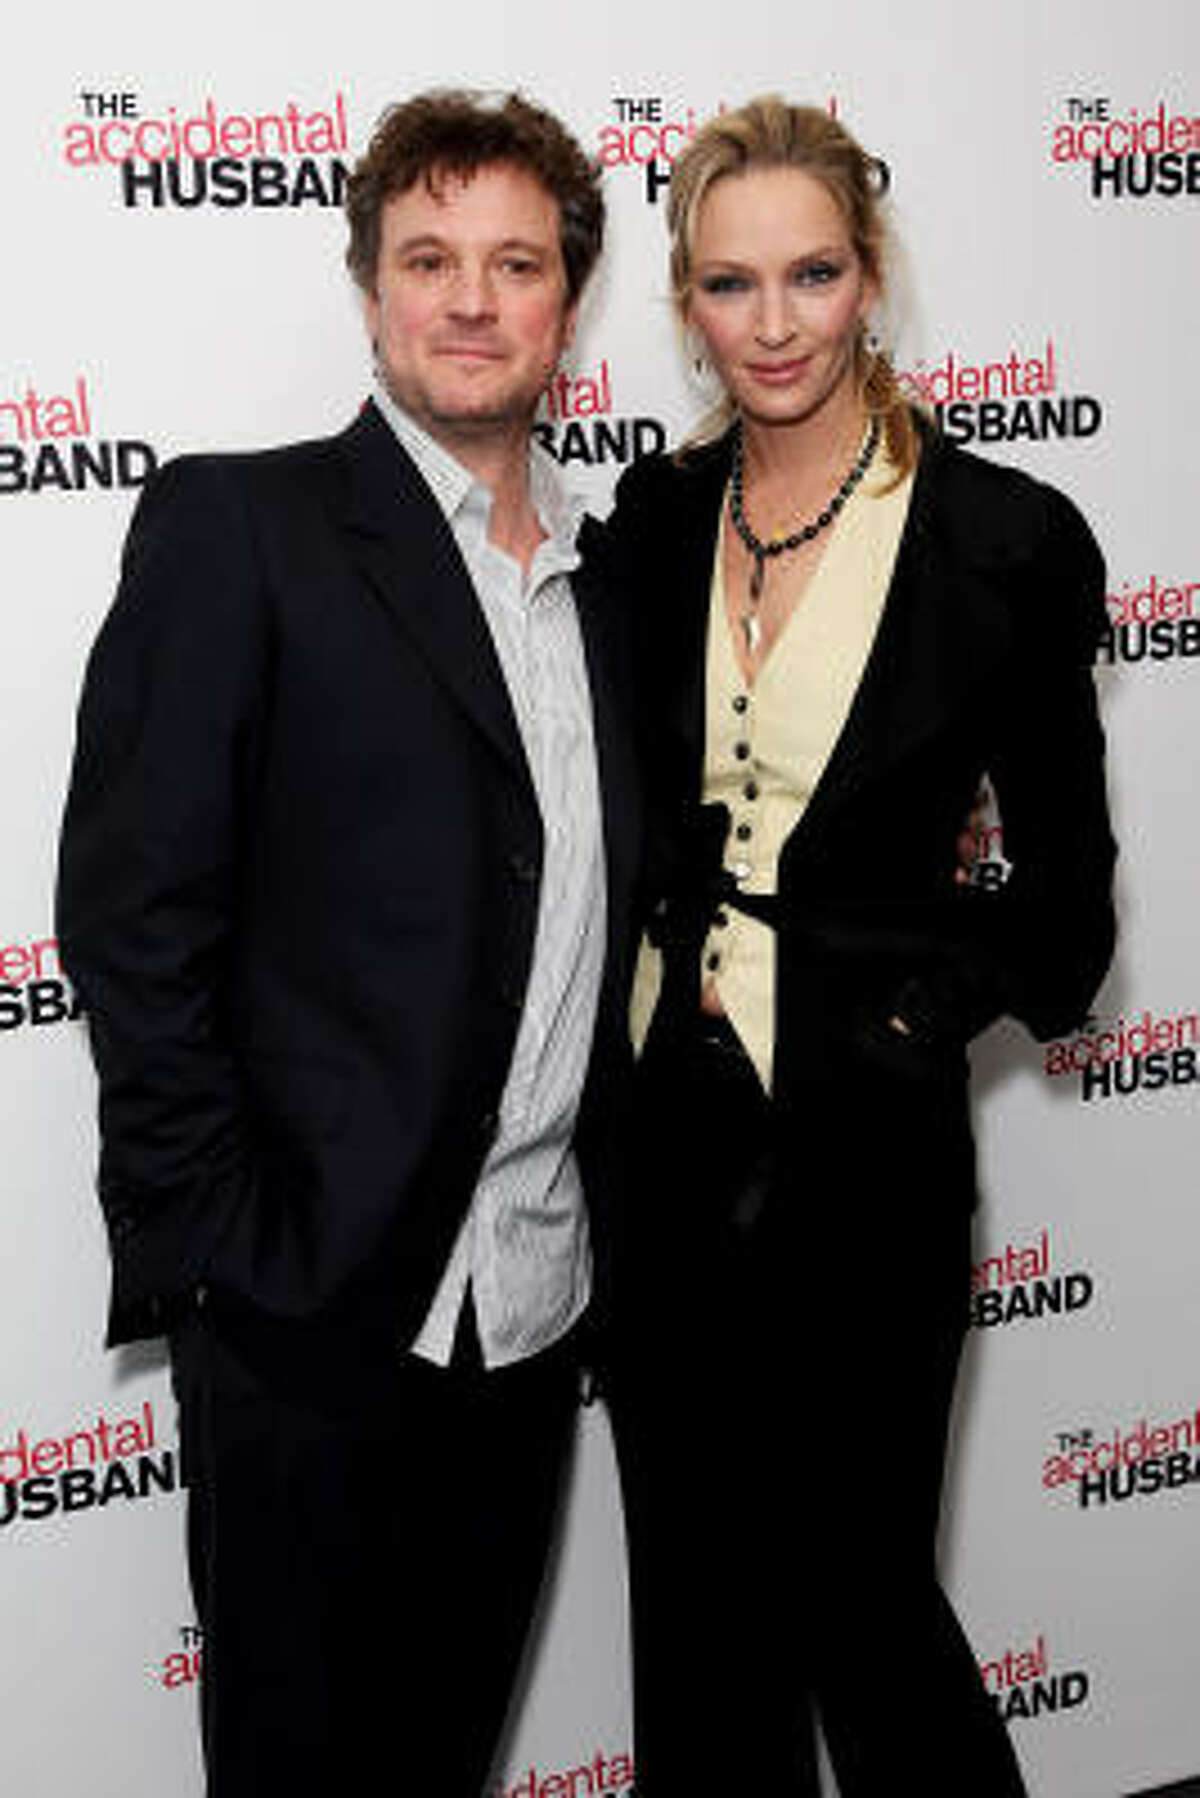 The Accidental Husband is a romantic comedy starring Uma Thurman, Jeffrey Dean Morgan and Colin Firth.